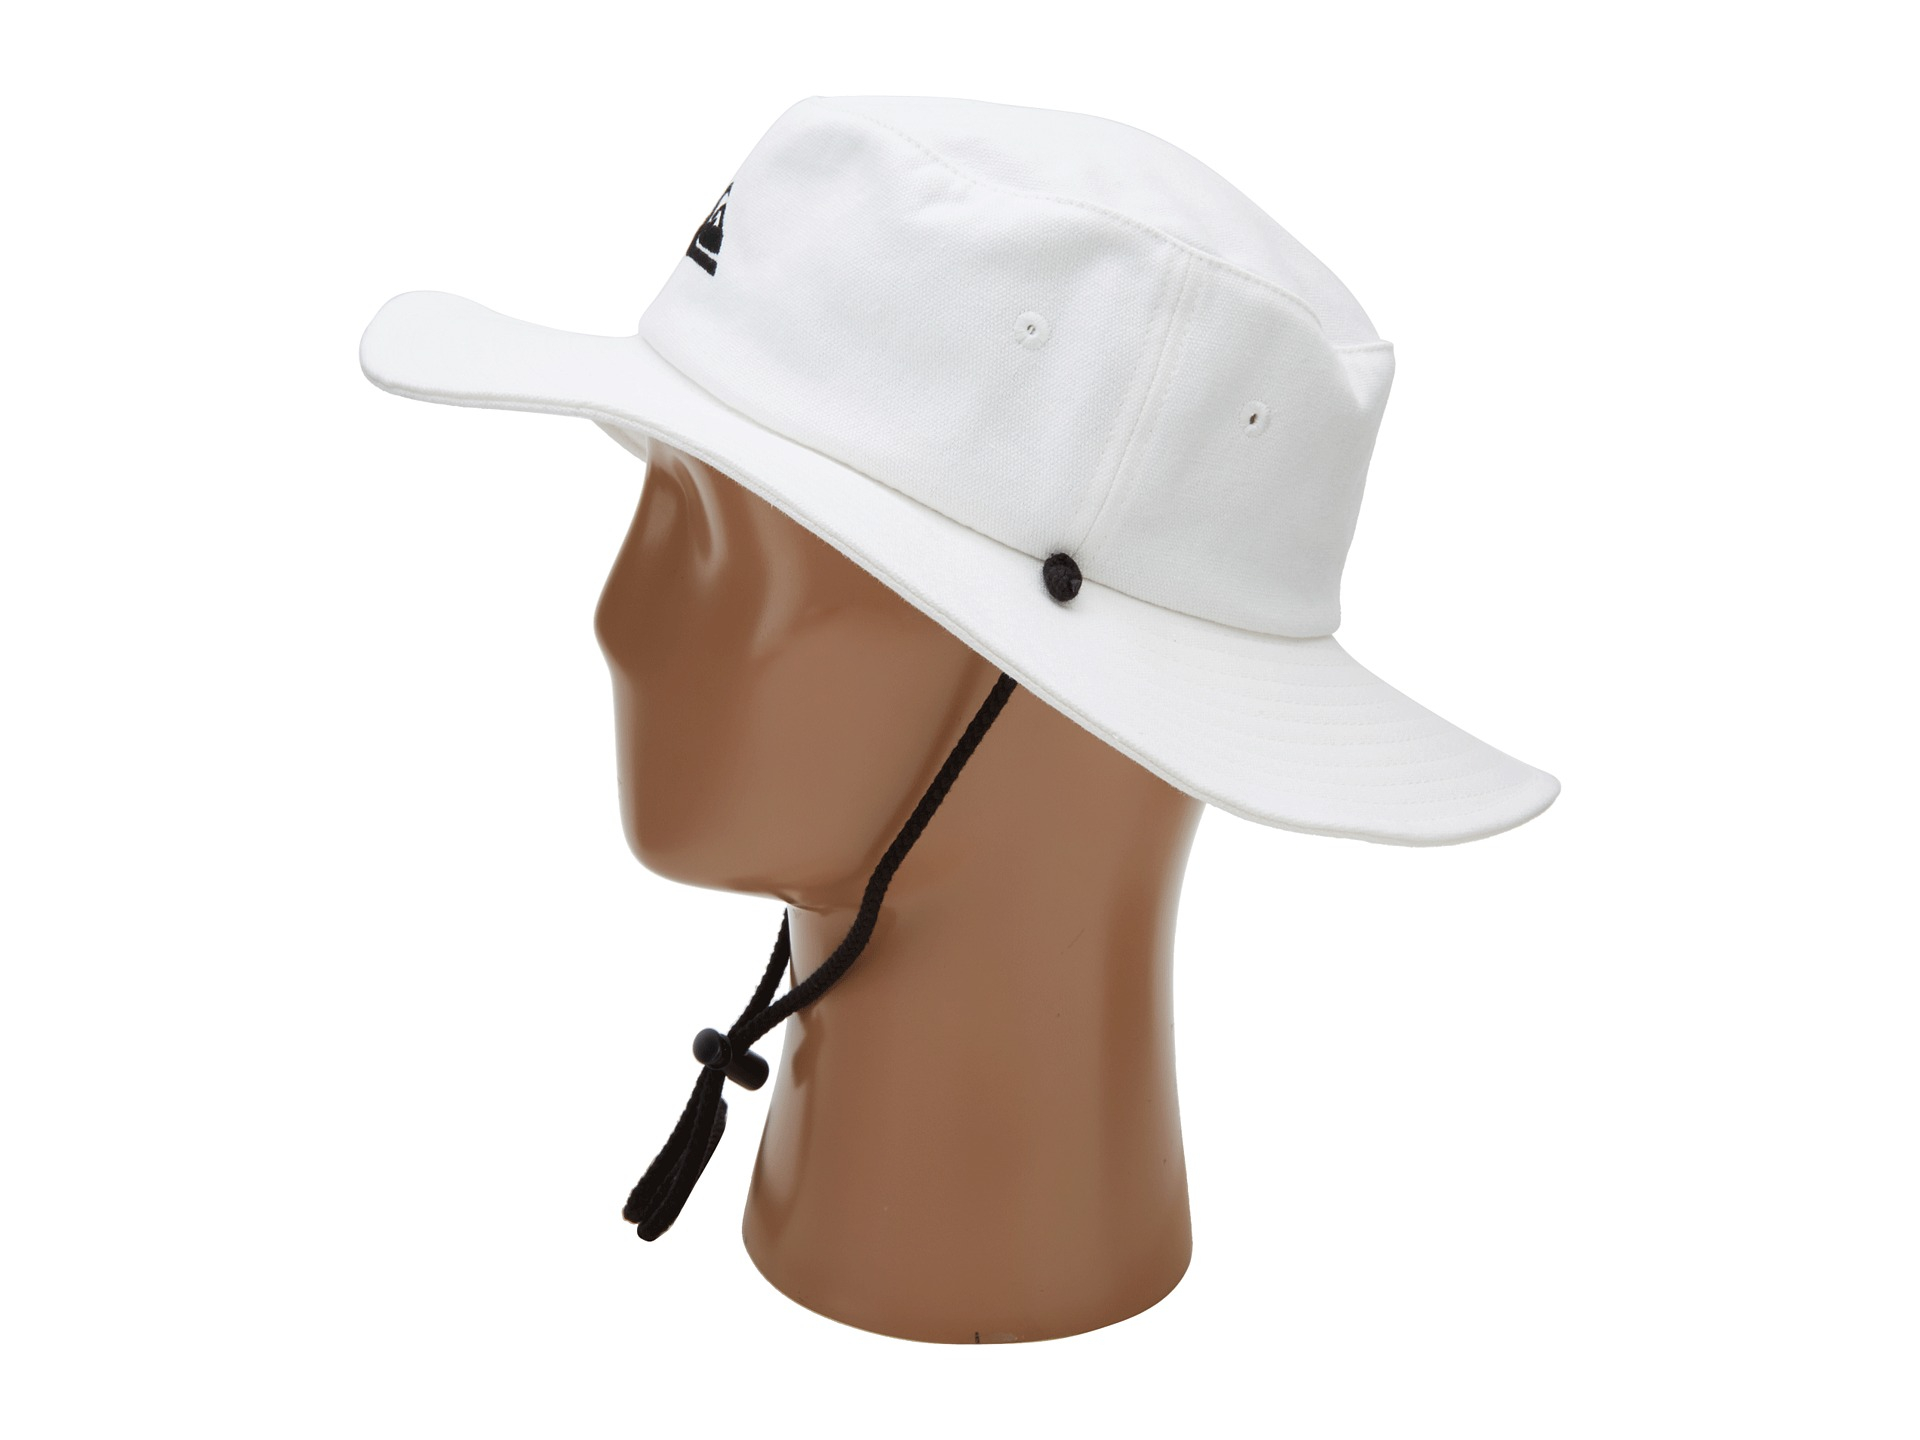 35955834b64978 coupon bushmaster light fishing hat by quiksilver d2862 19a25; spain lyst quiksilver  original bushmaster hat in white for men 7ad00 b4c1e